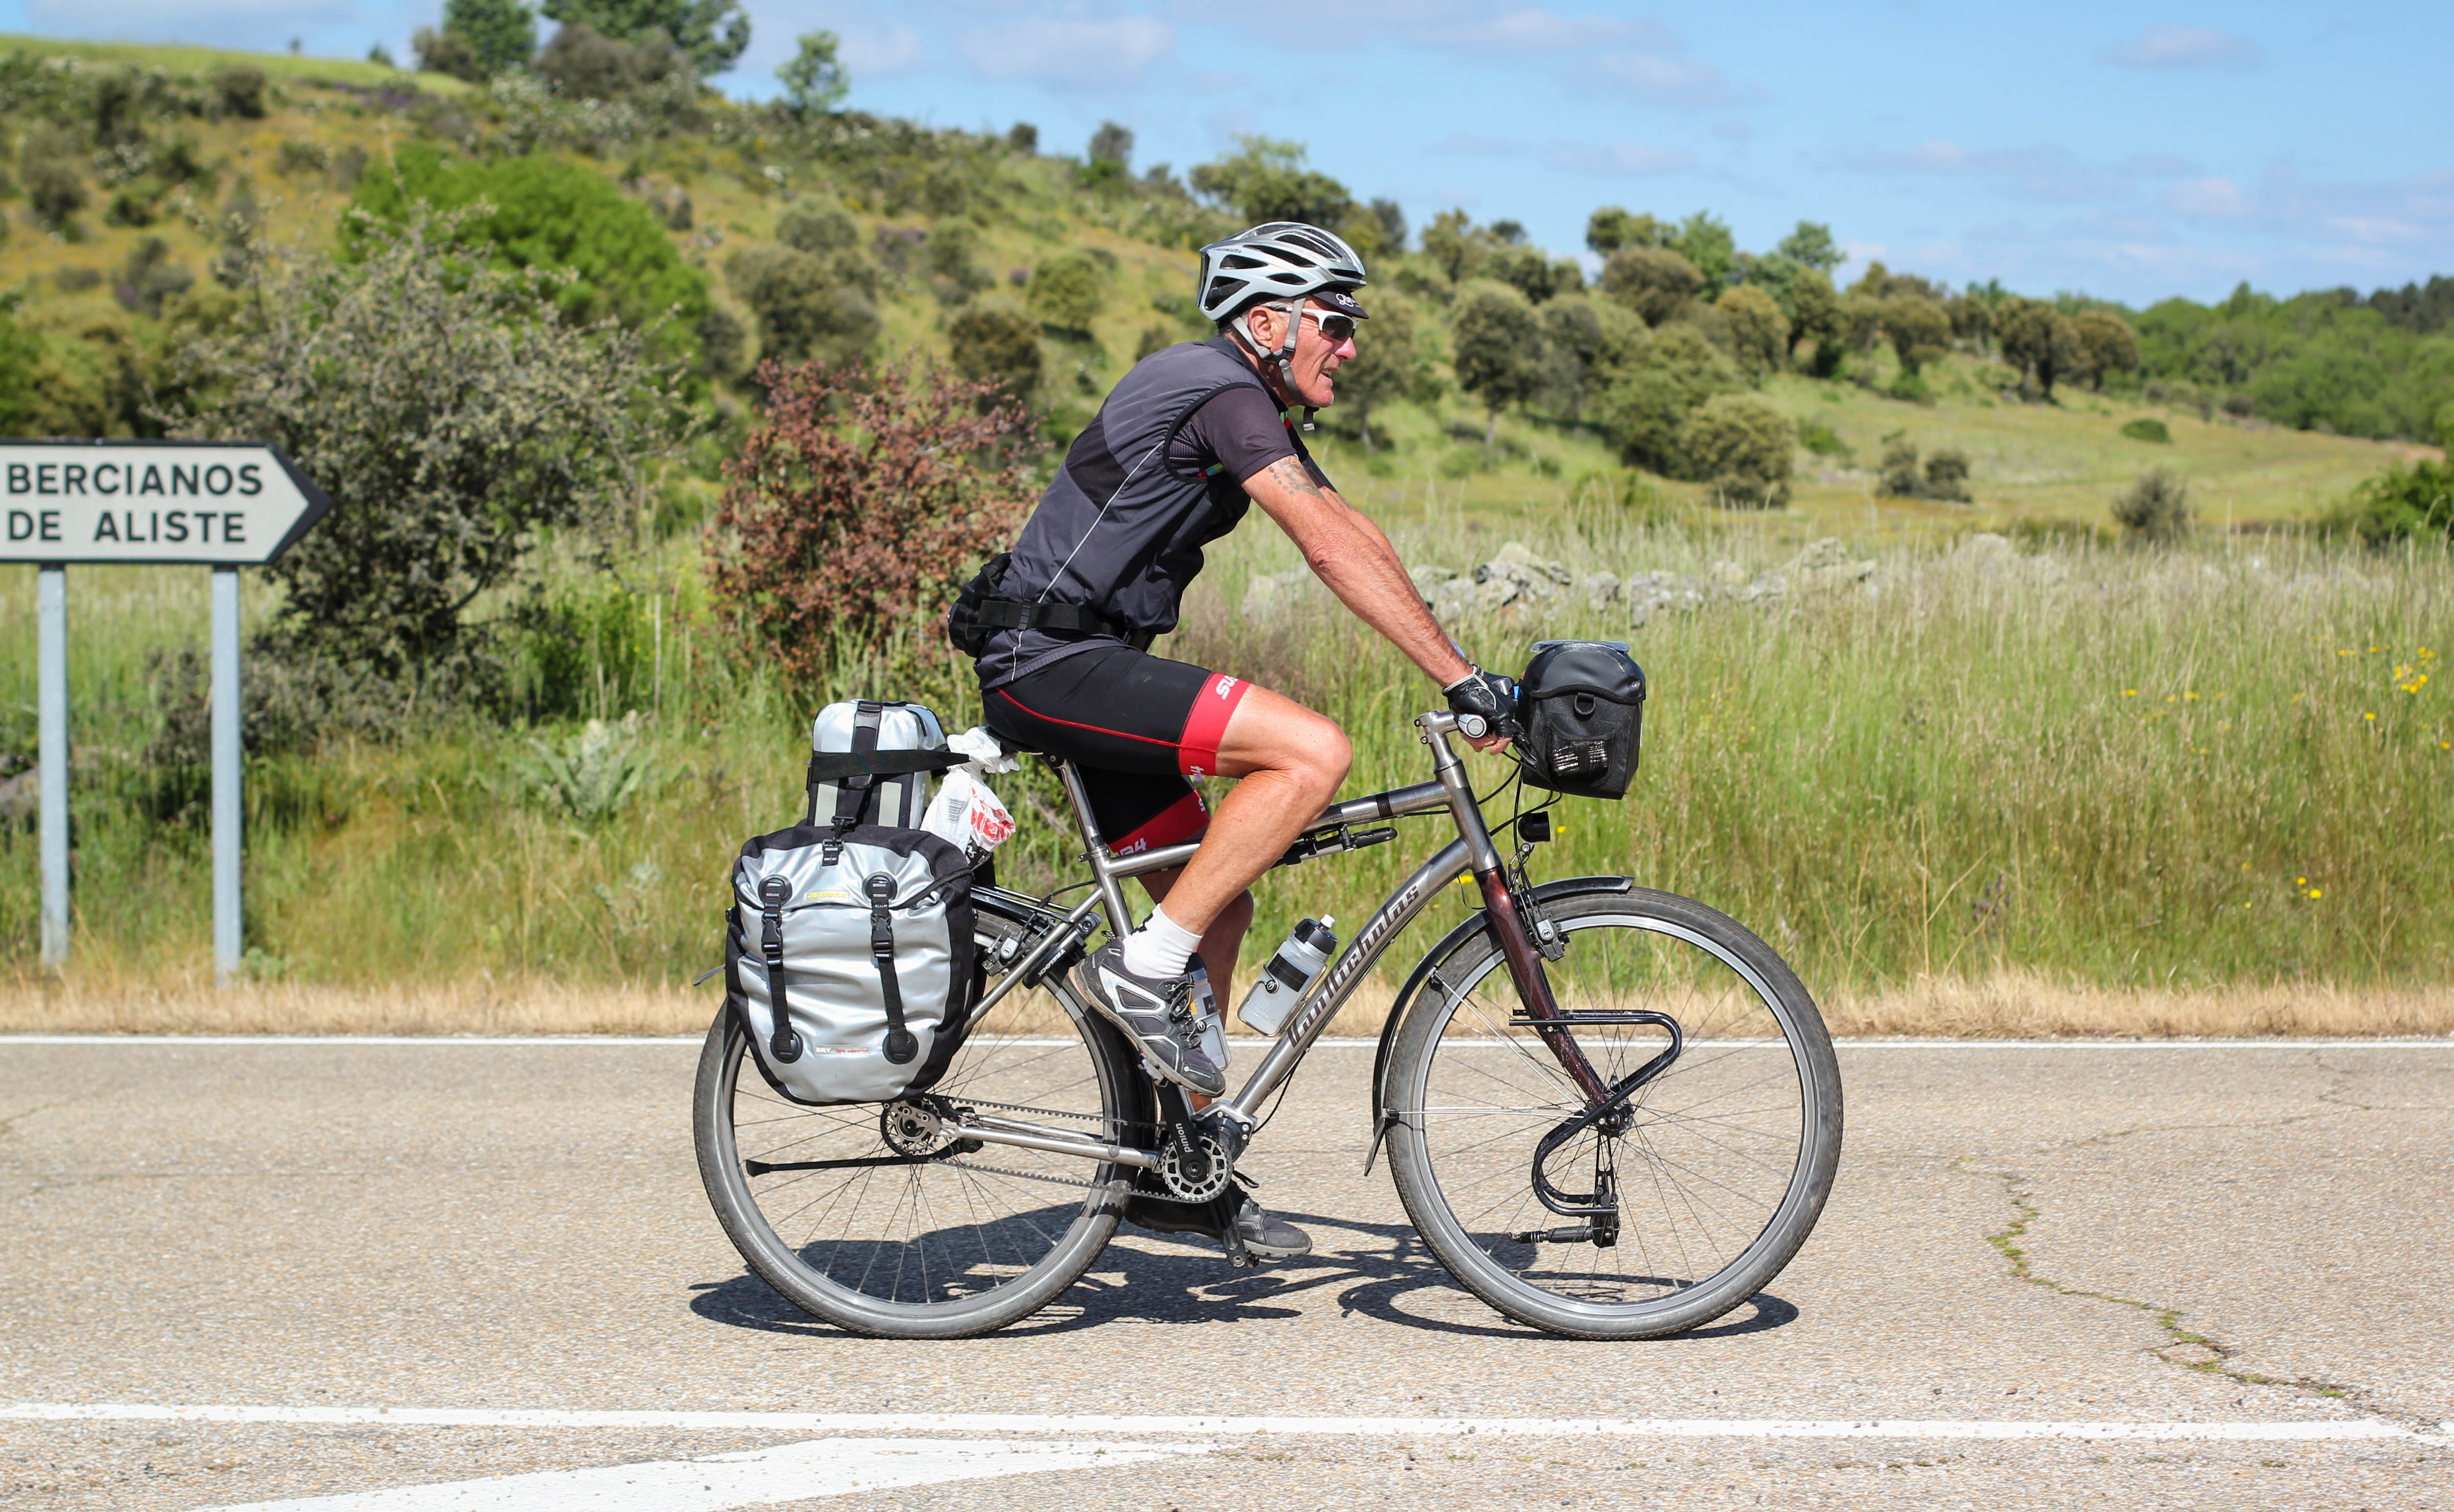 Kevin s Lightweight Gear List For Bike Touring in Europe 341263244